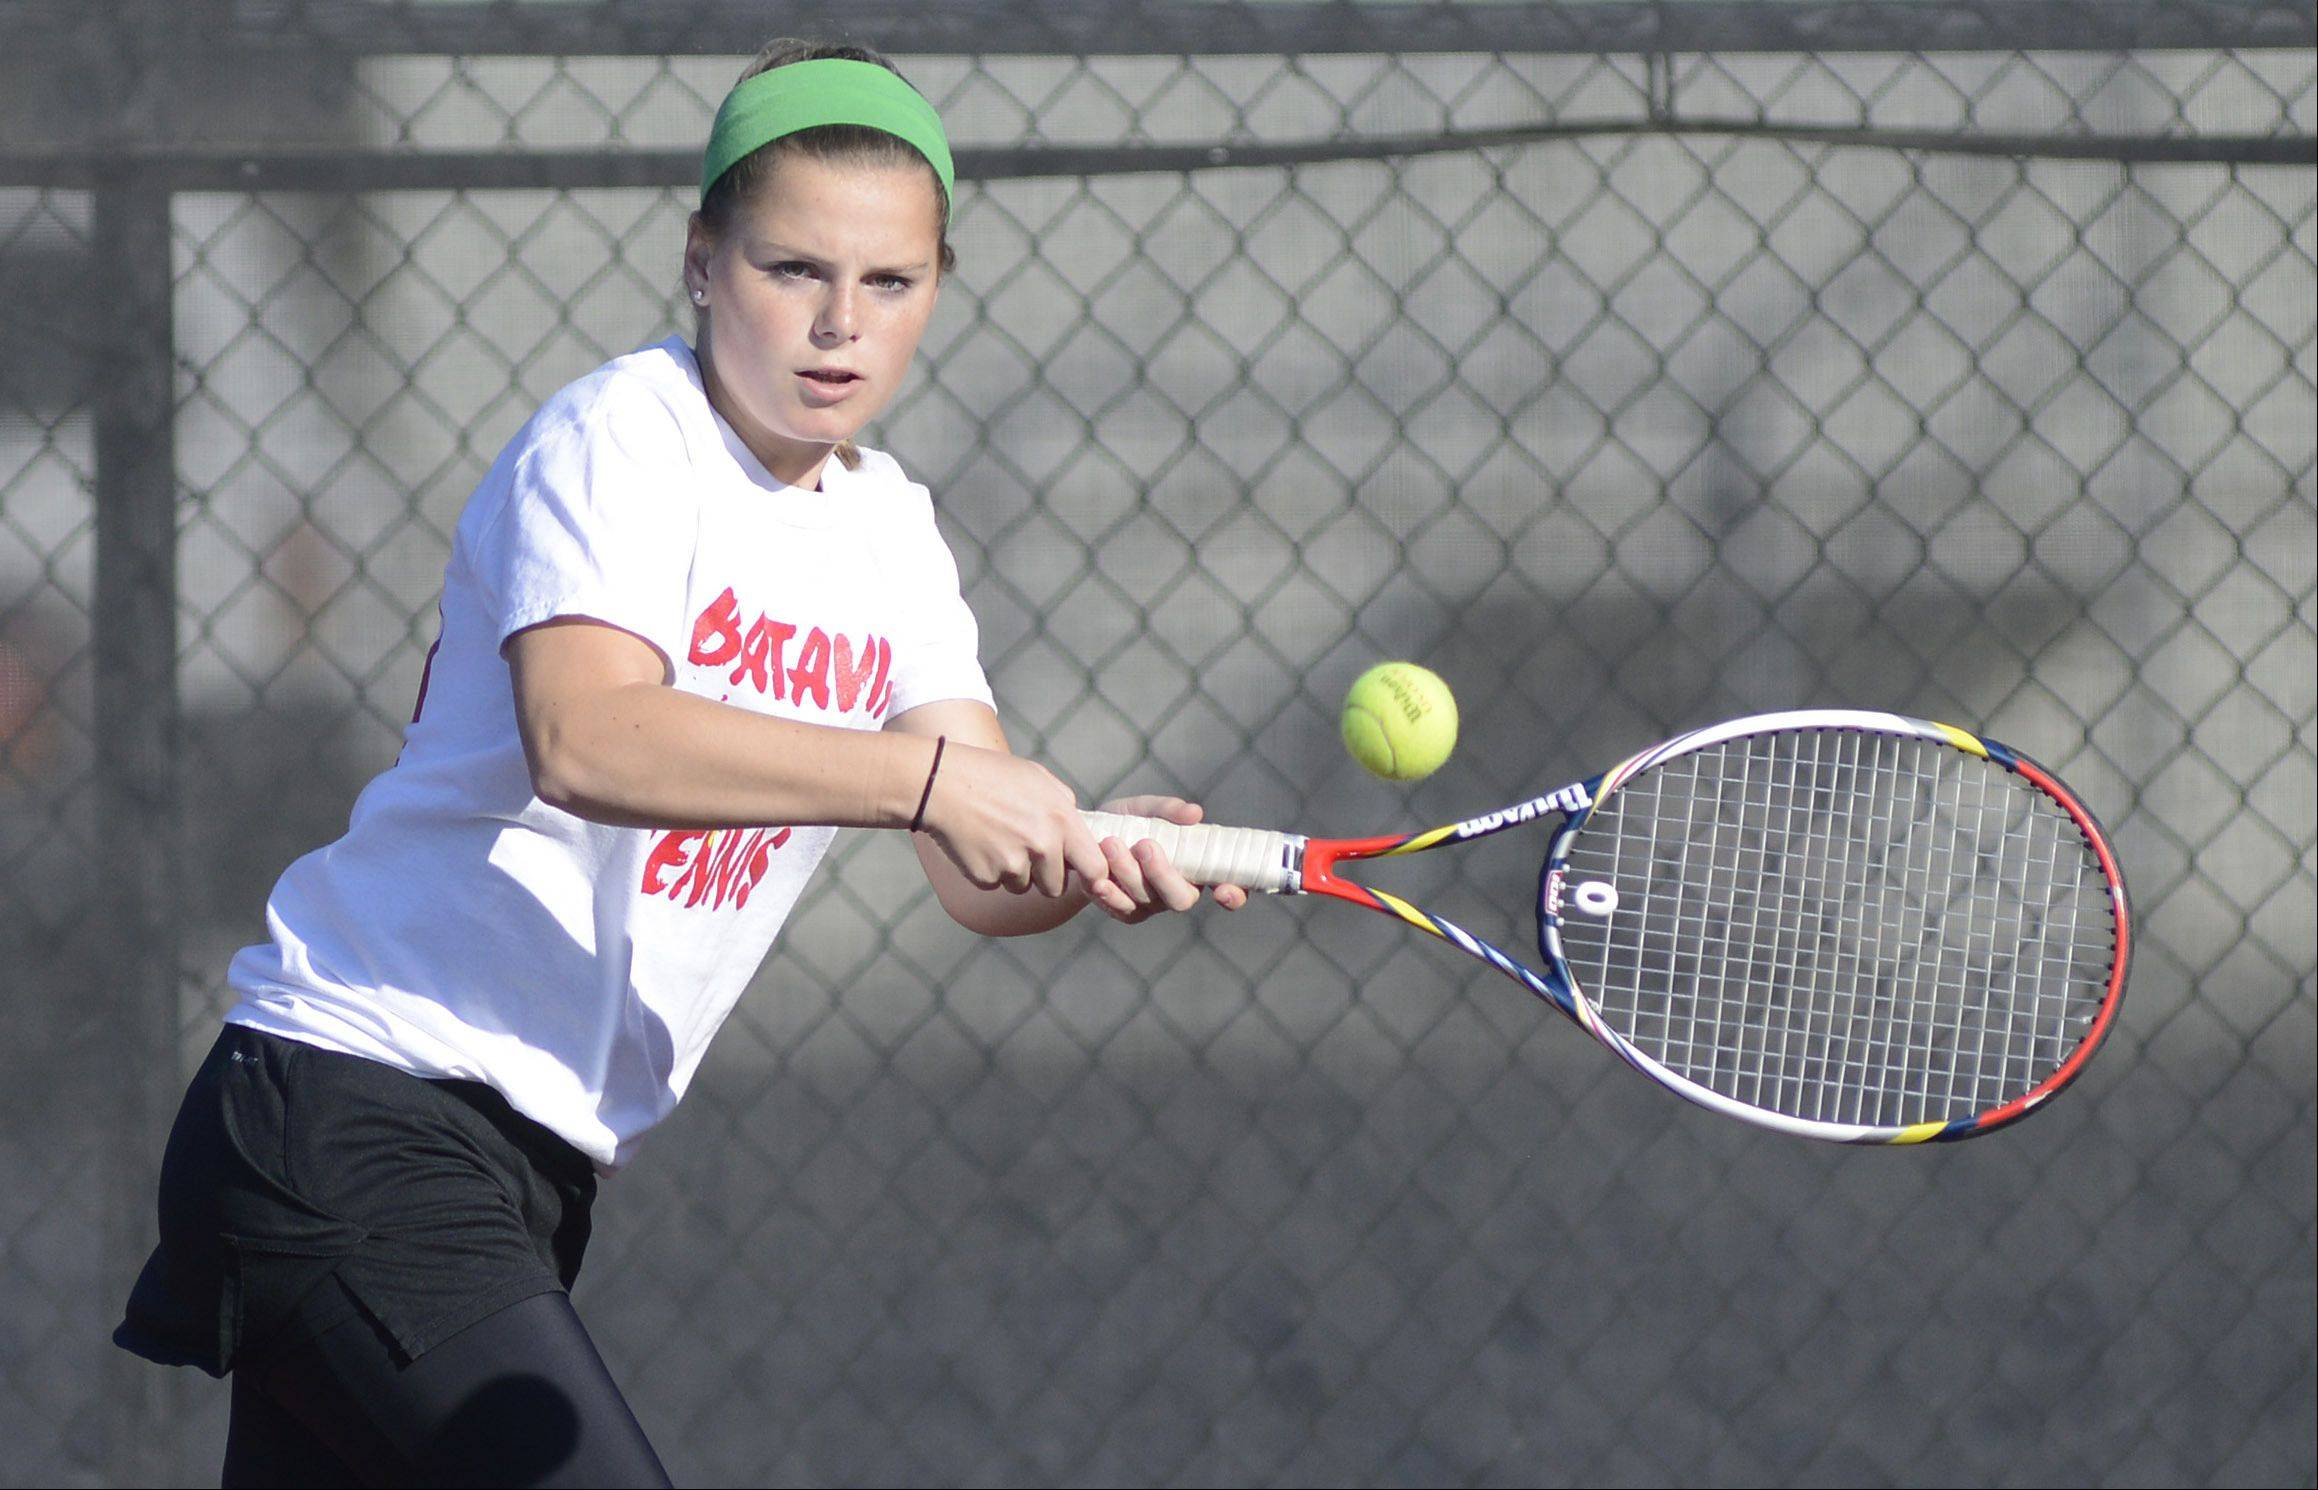 Batavia doubles player Sydney Unterberg returns a hit from Bartlett at the sectional meet on Saturday, October 19.